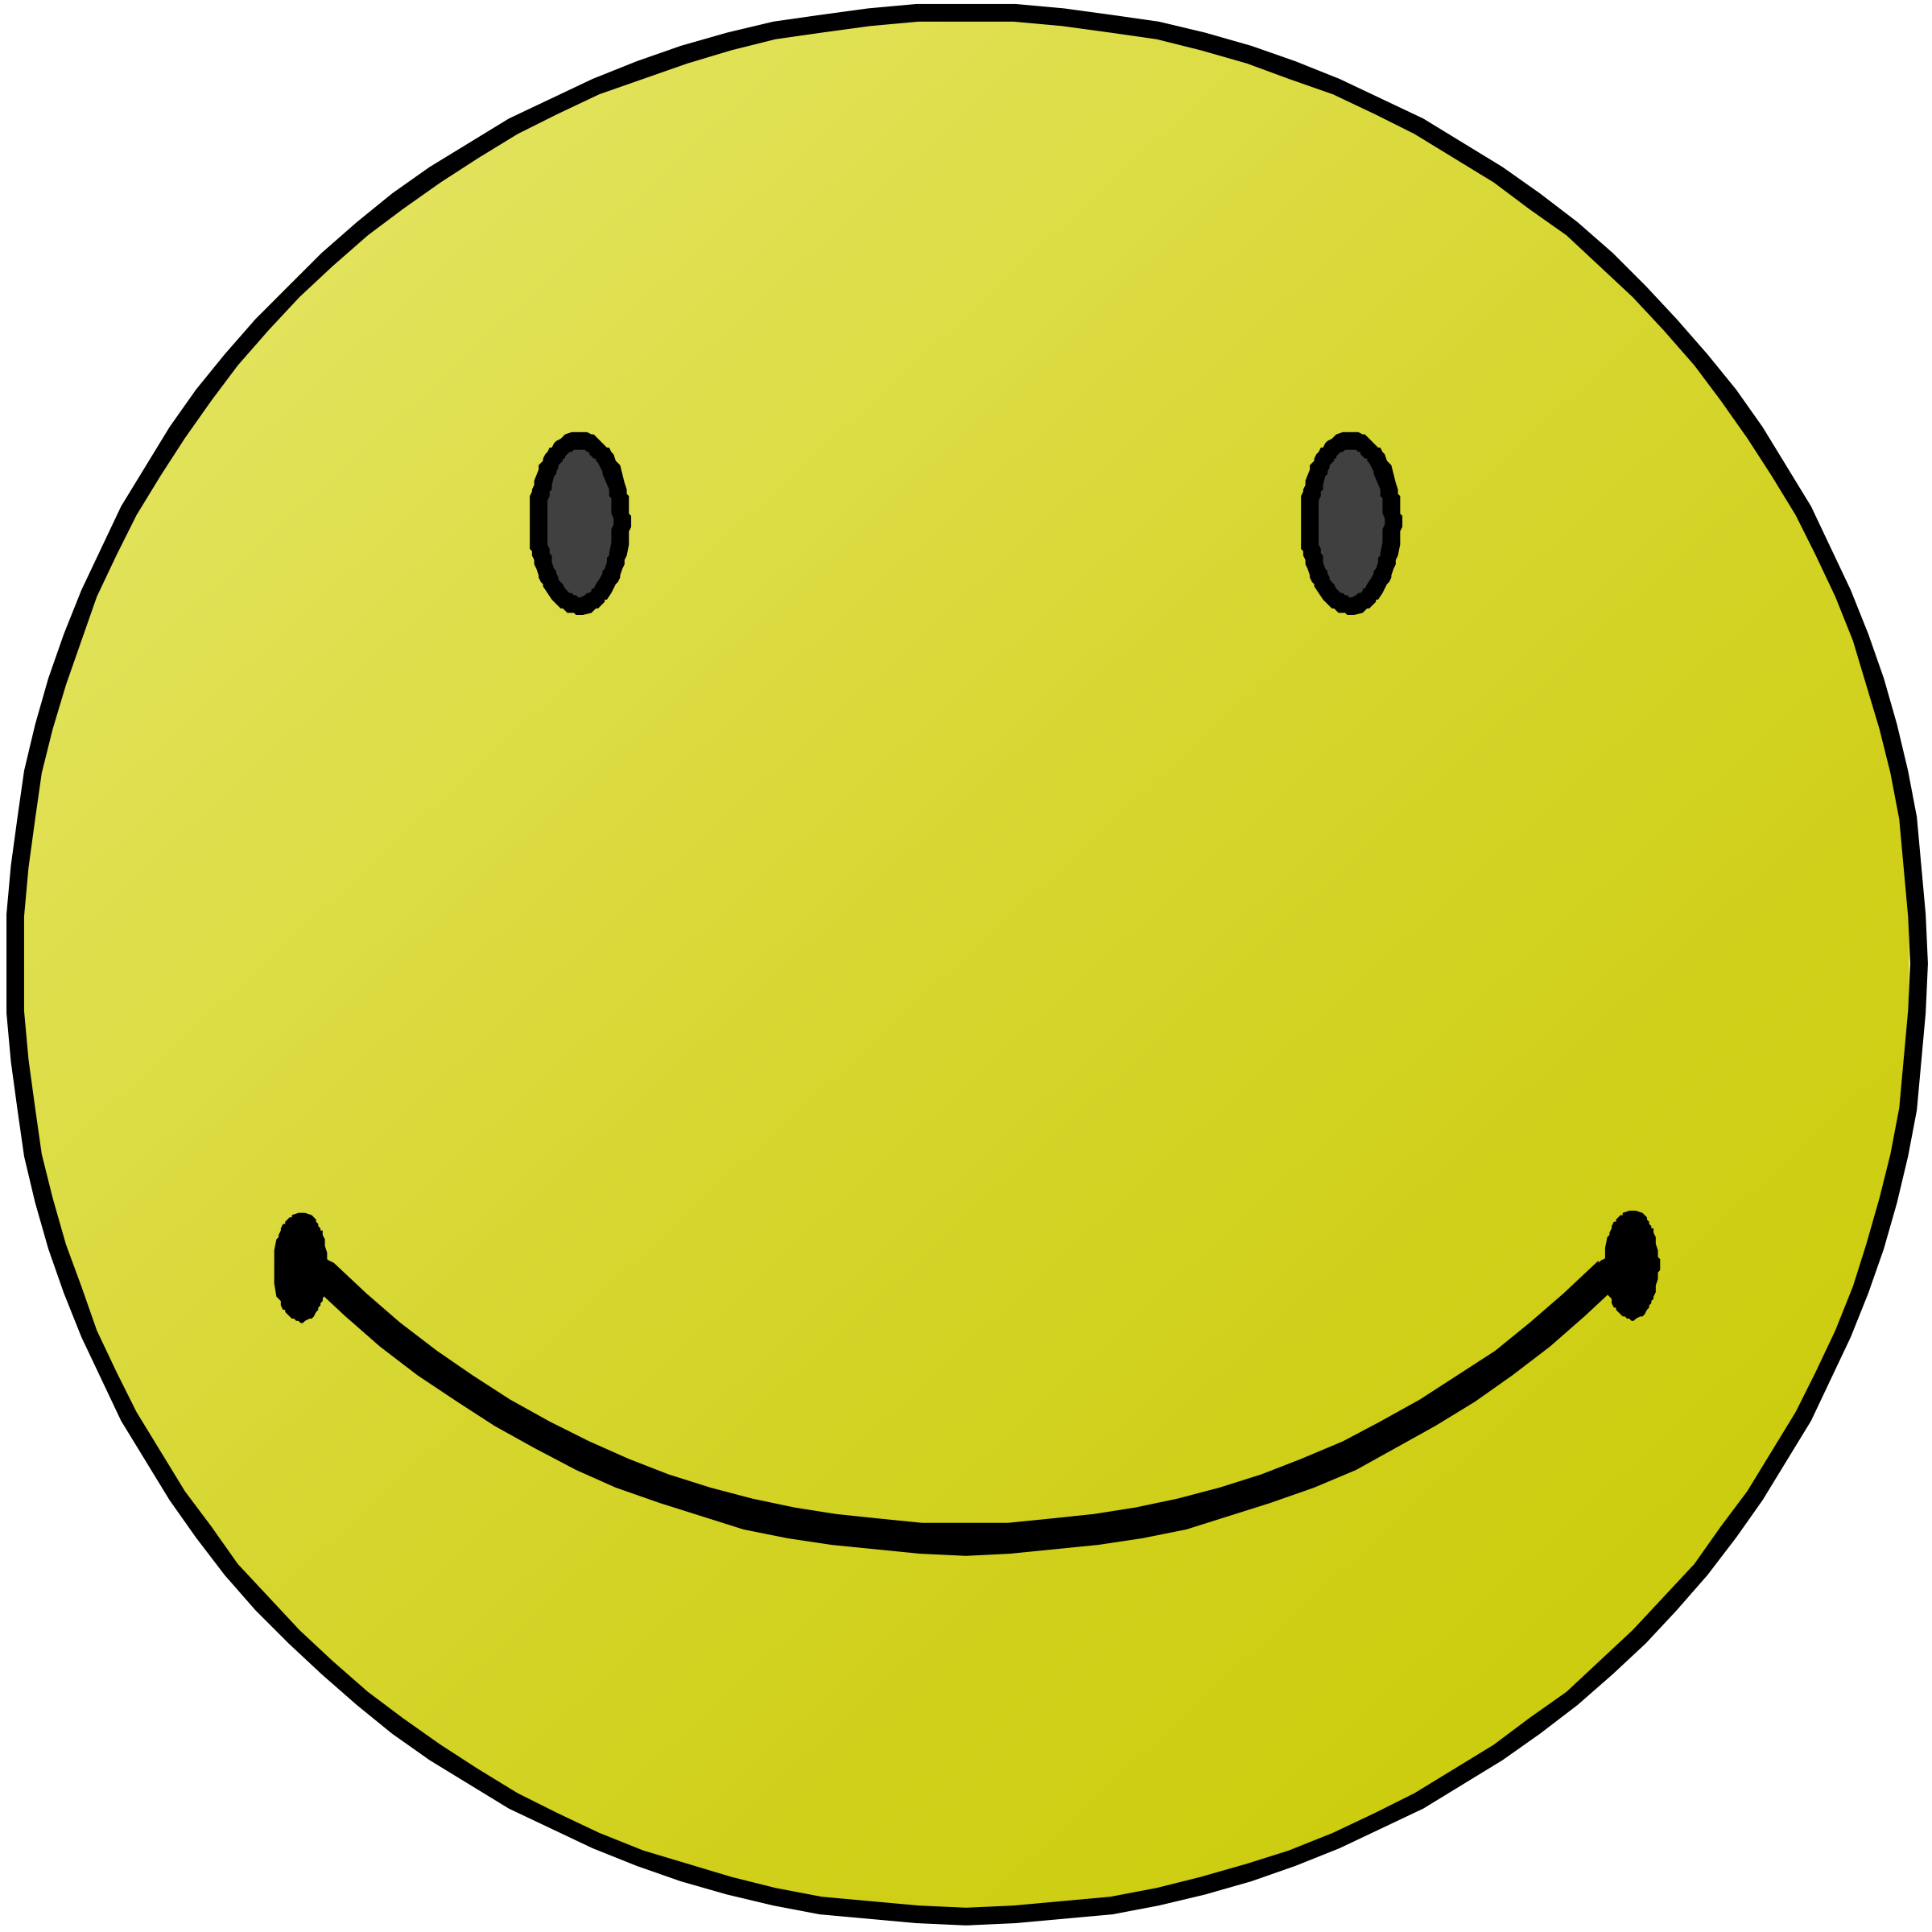 Free happy face clipart images png royalty free stock Free Happy Face Clipart, Download Free Clip Art, Free Clip Art on ... png royalty free stock